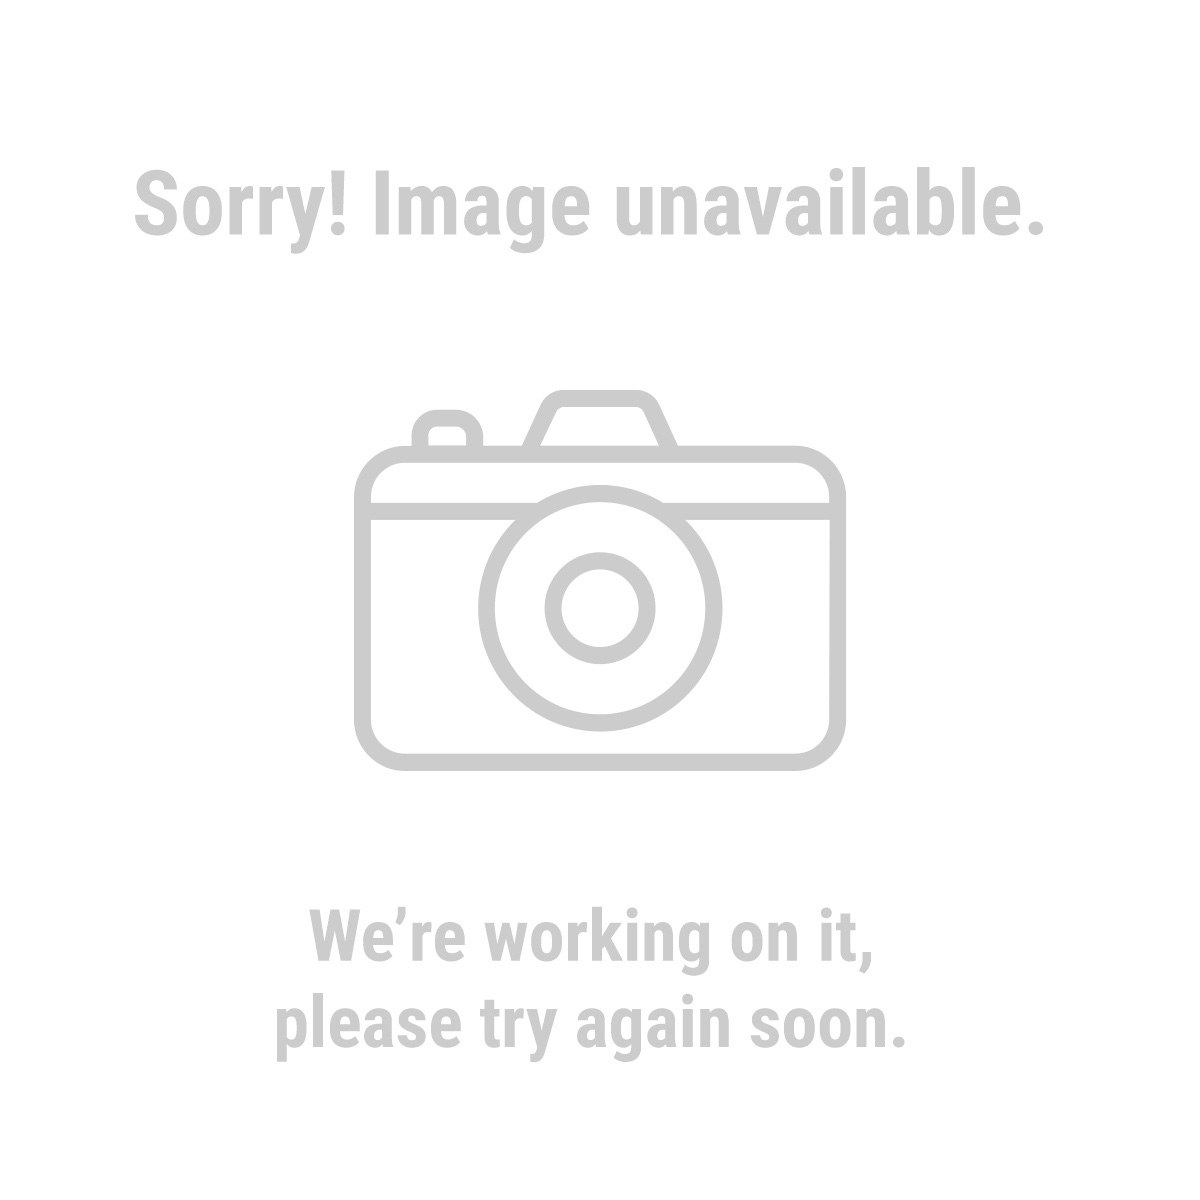 Western Safety 66290 5 Pair Cotton Gloves